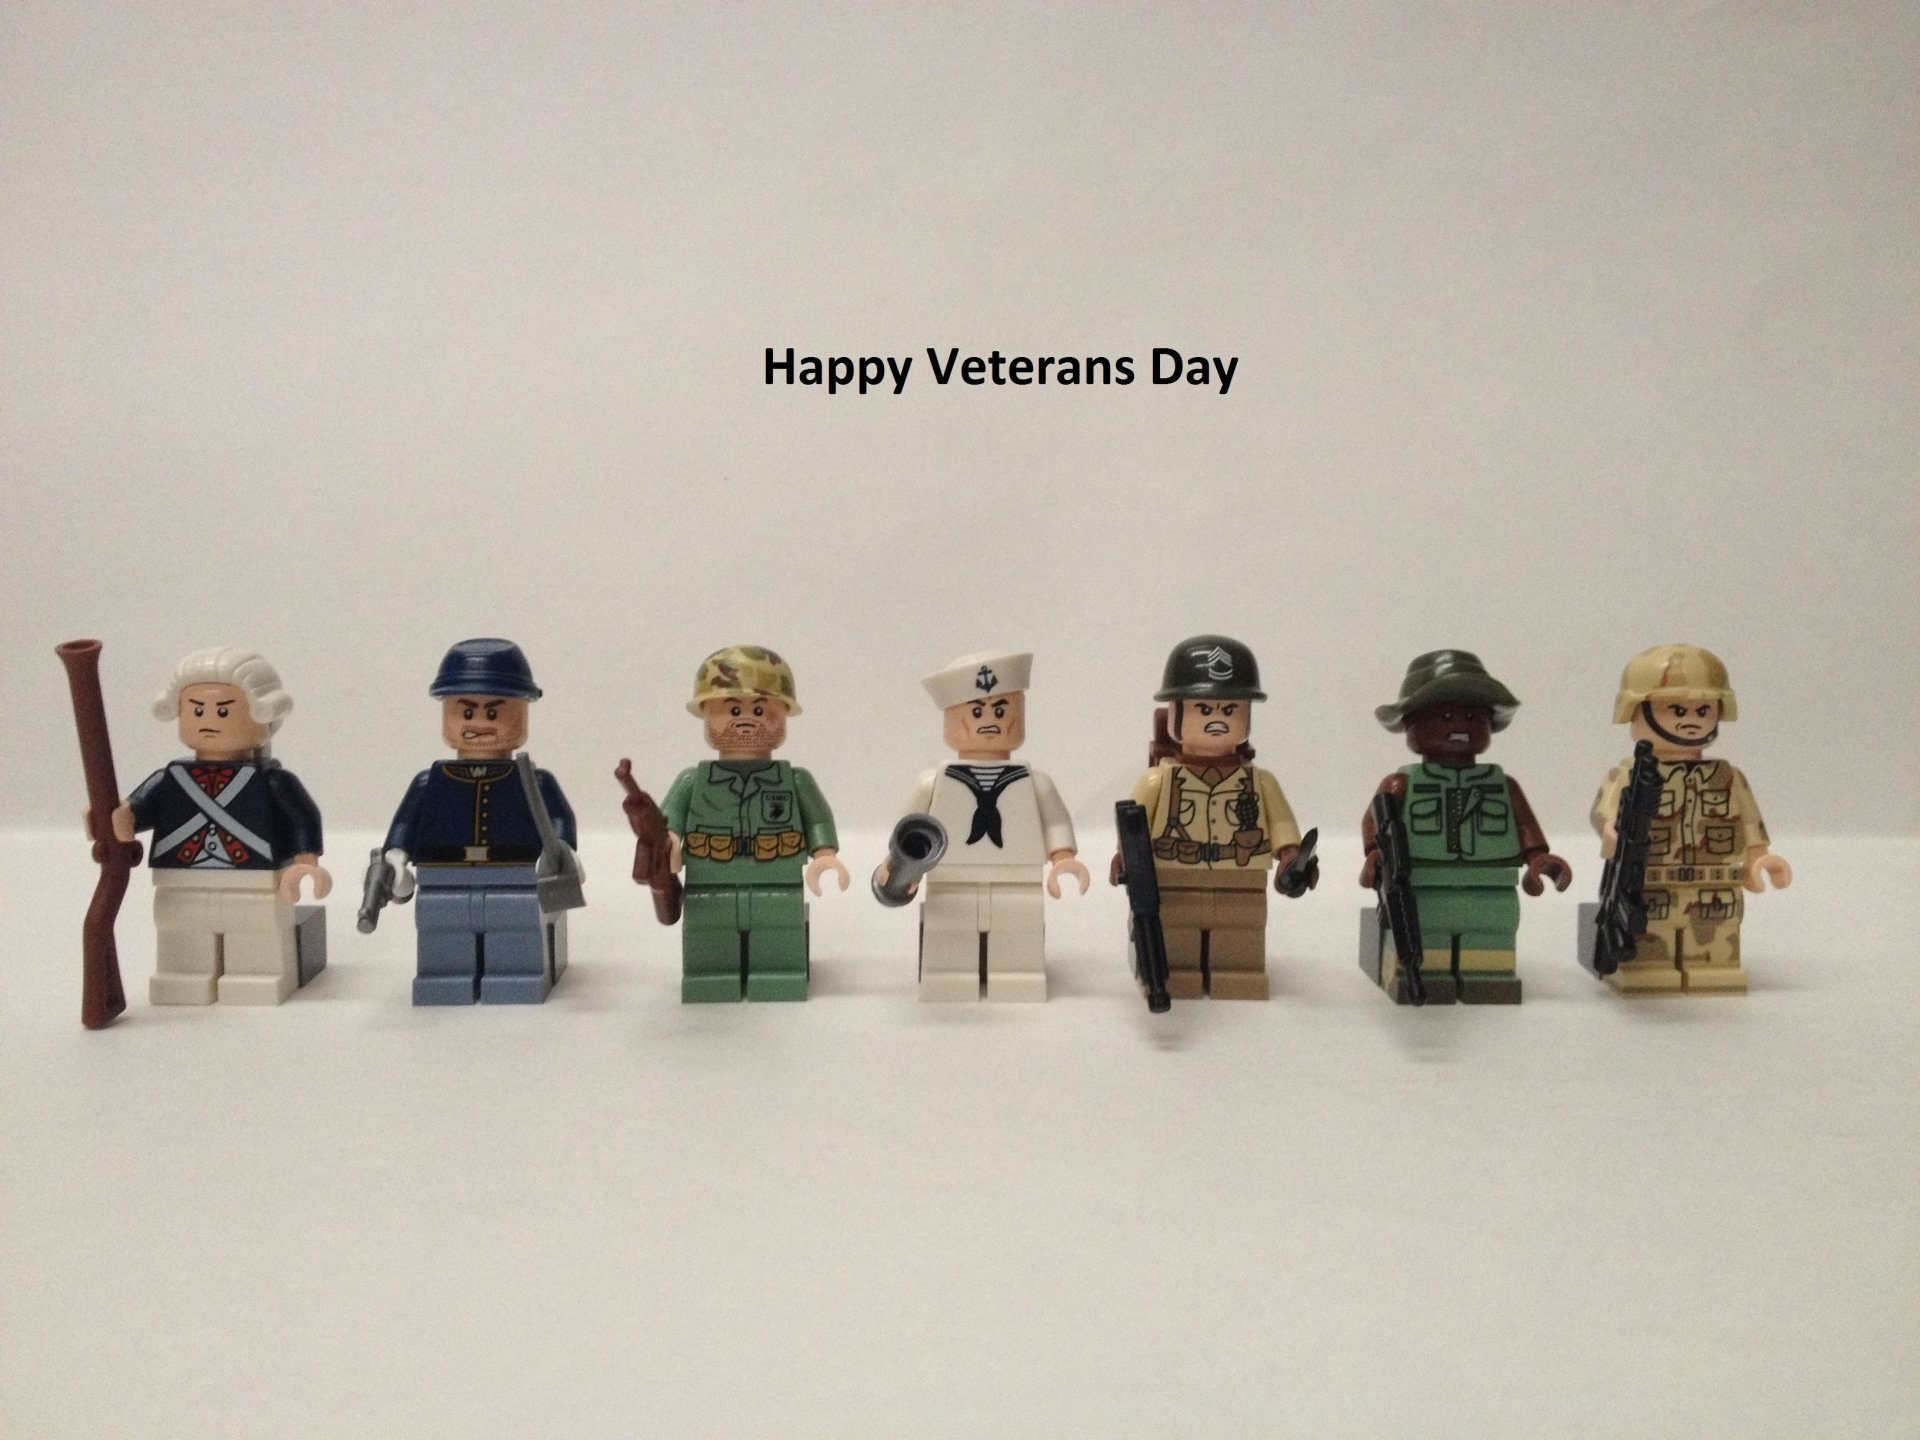 Holiday - Veterans Day  Wallpaper